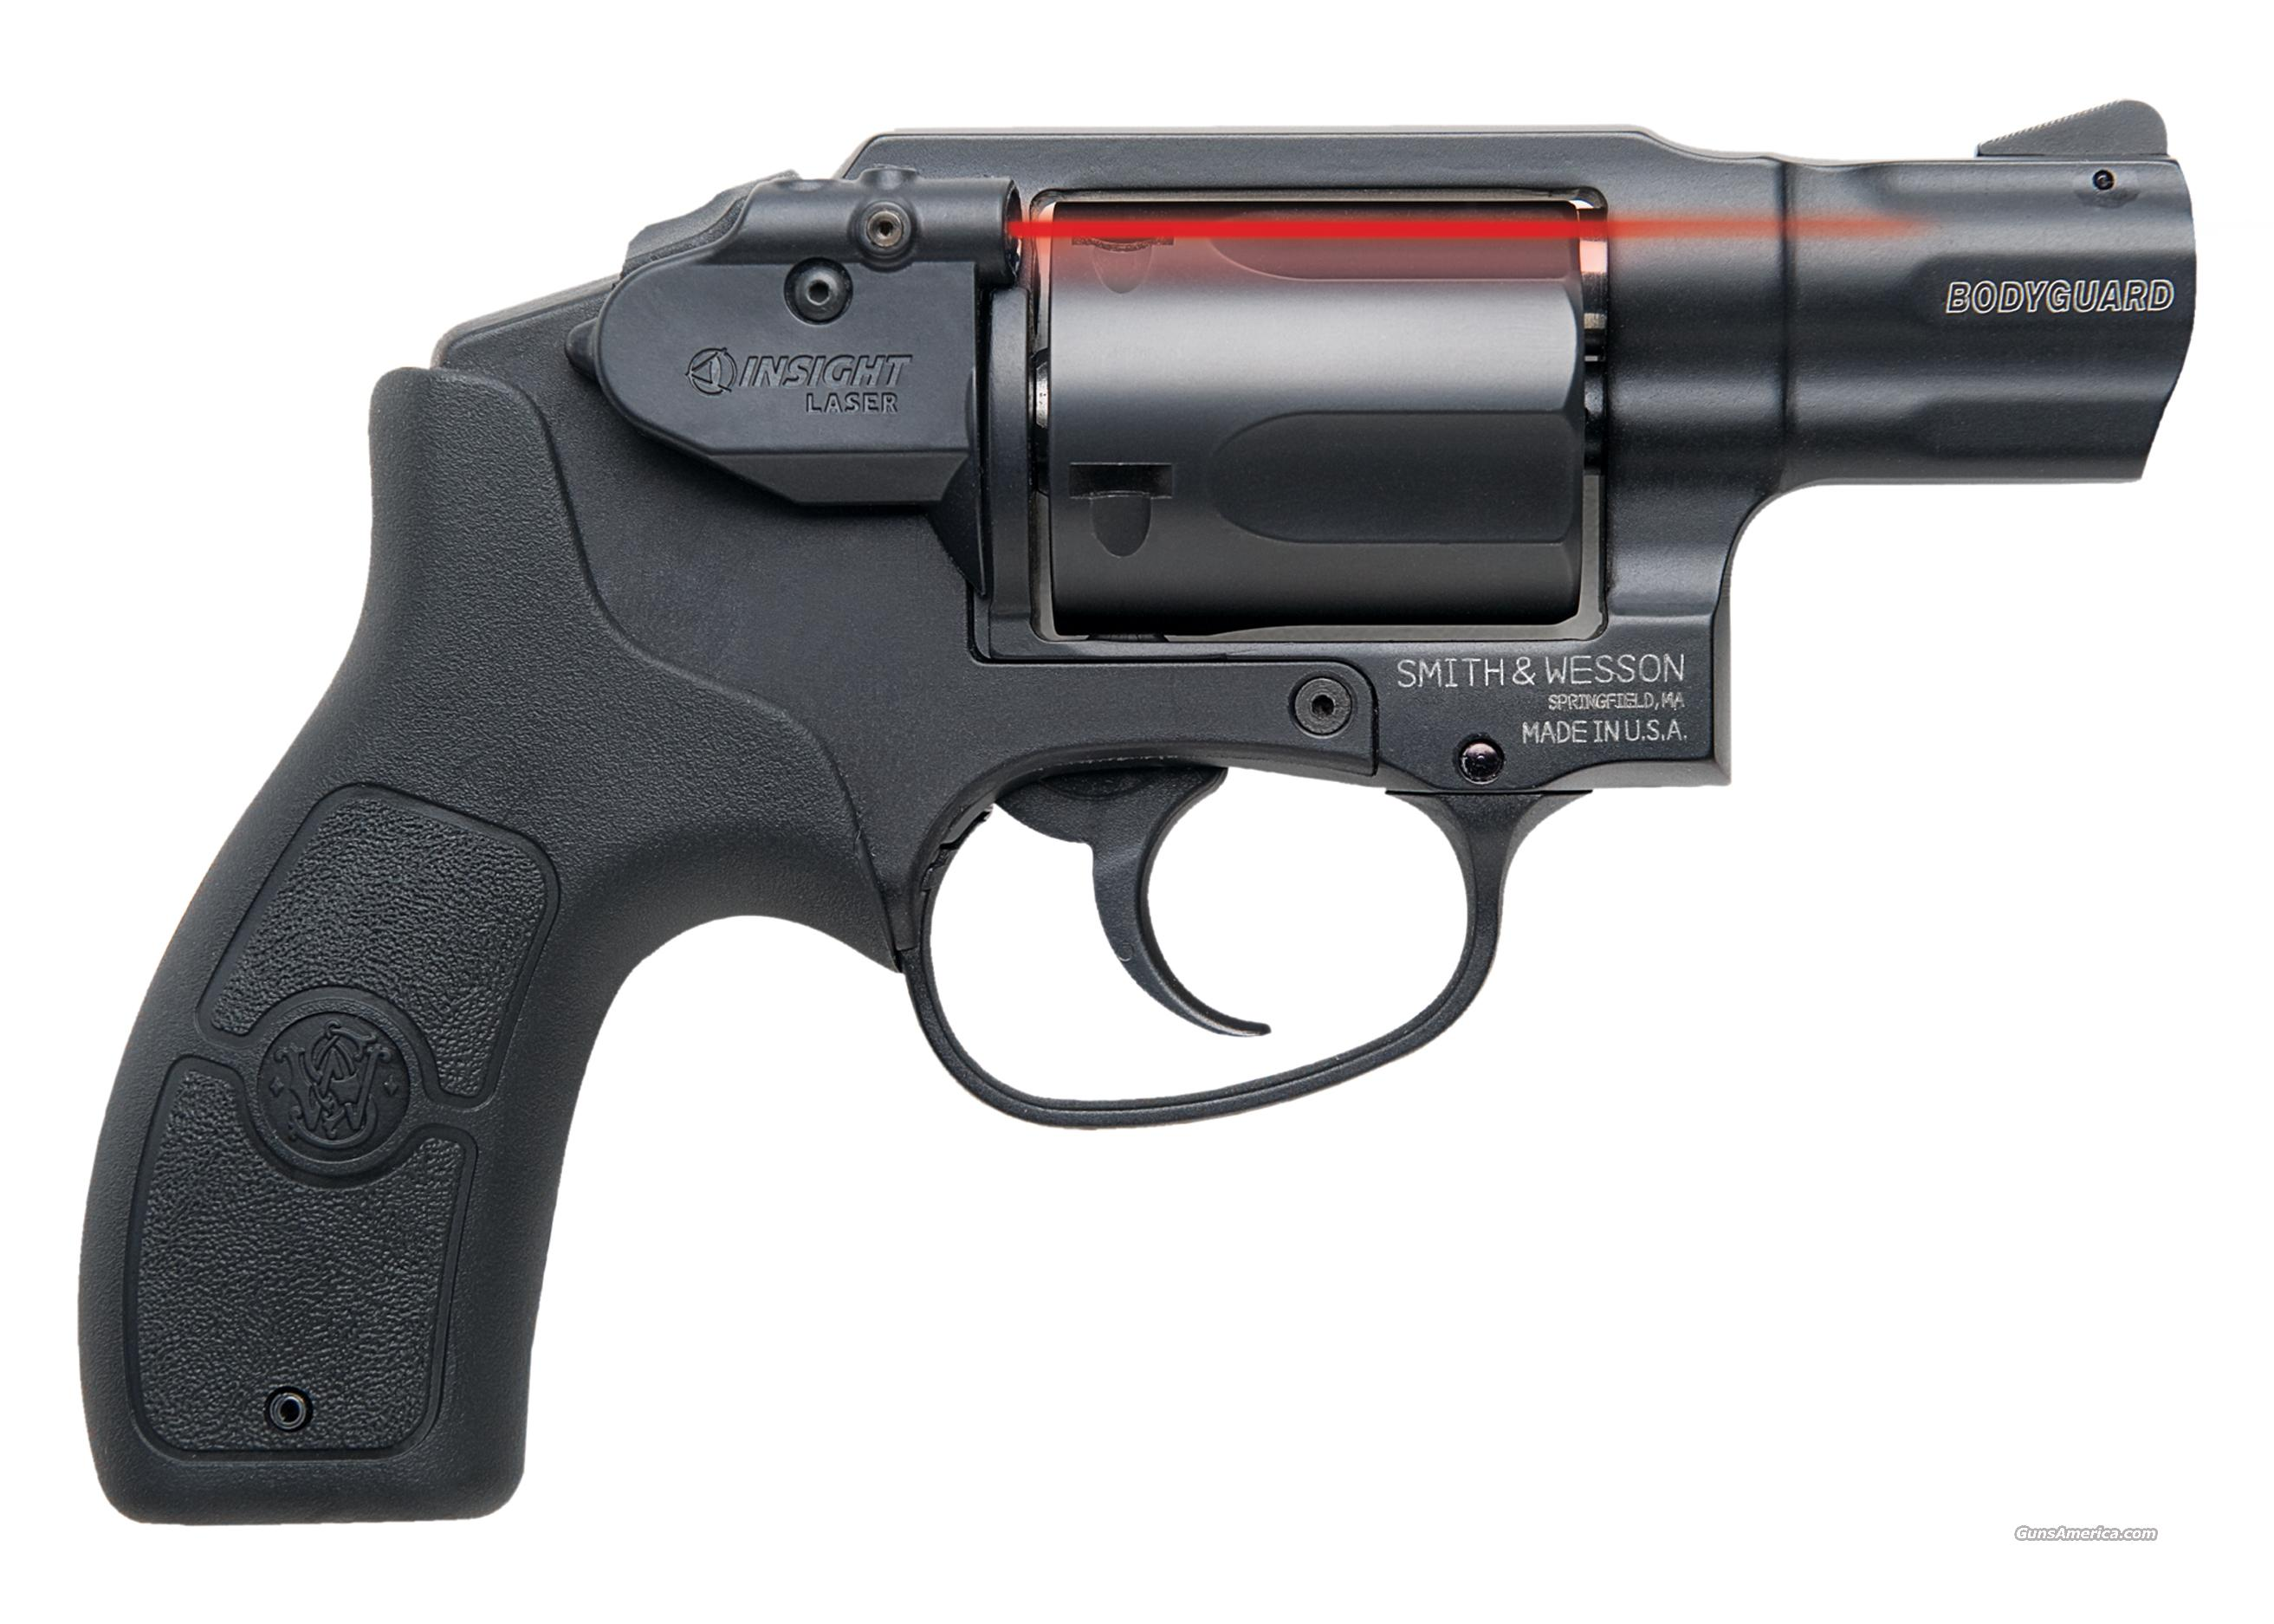 Smith & Wesson 38 Bodyguard w/ Laser *NEW*  Guns > Pistols > Smith & Wesson Revolvers > Pocket Pistols